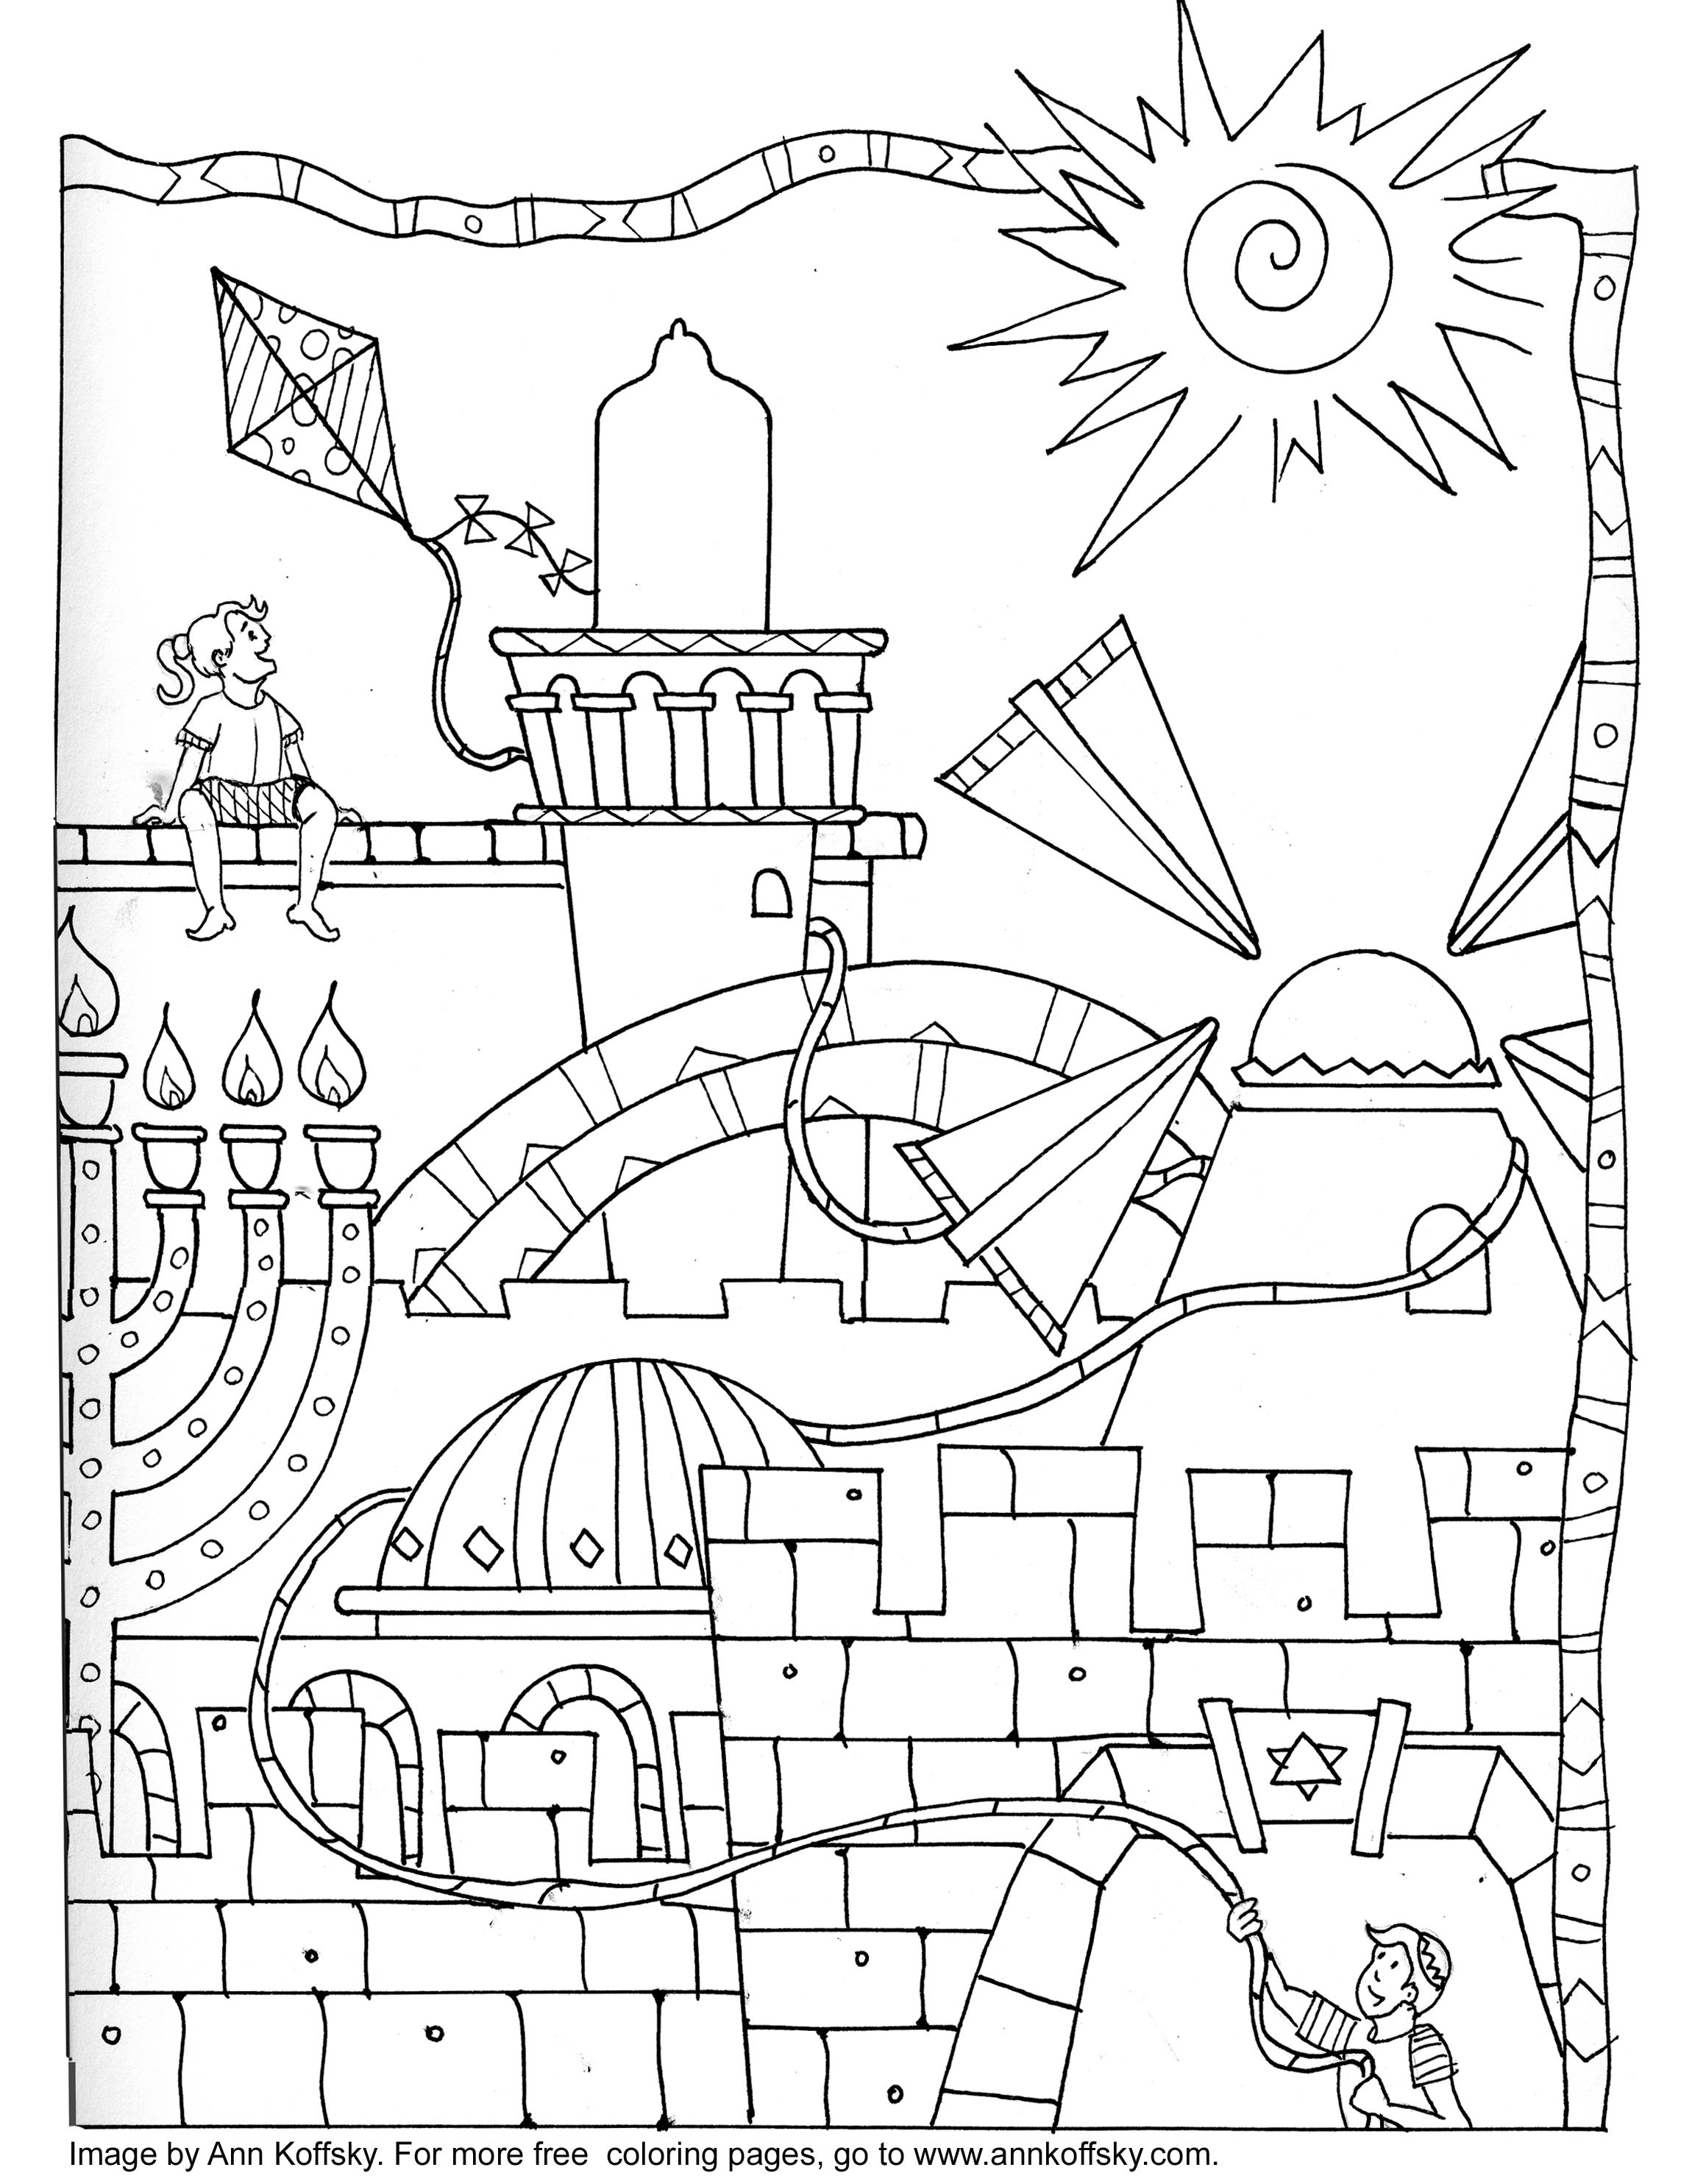 Coloring Page- 9 Days | Flag coloring pages, Coloring pages, Jewish crafts